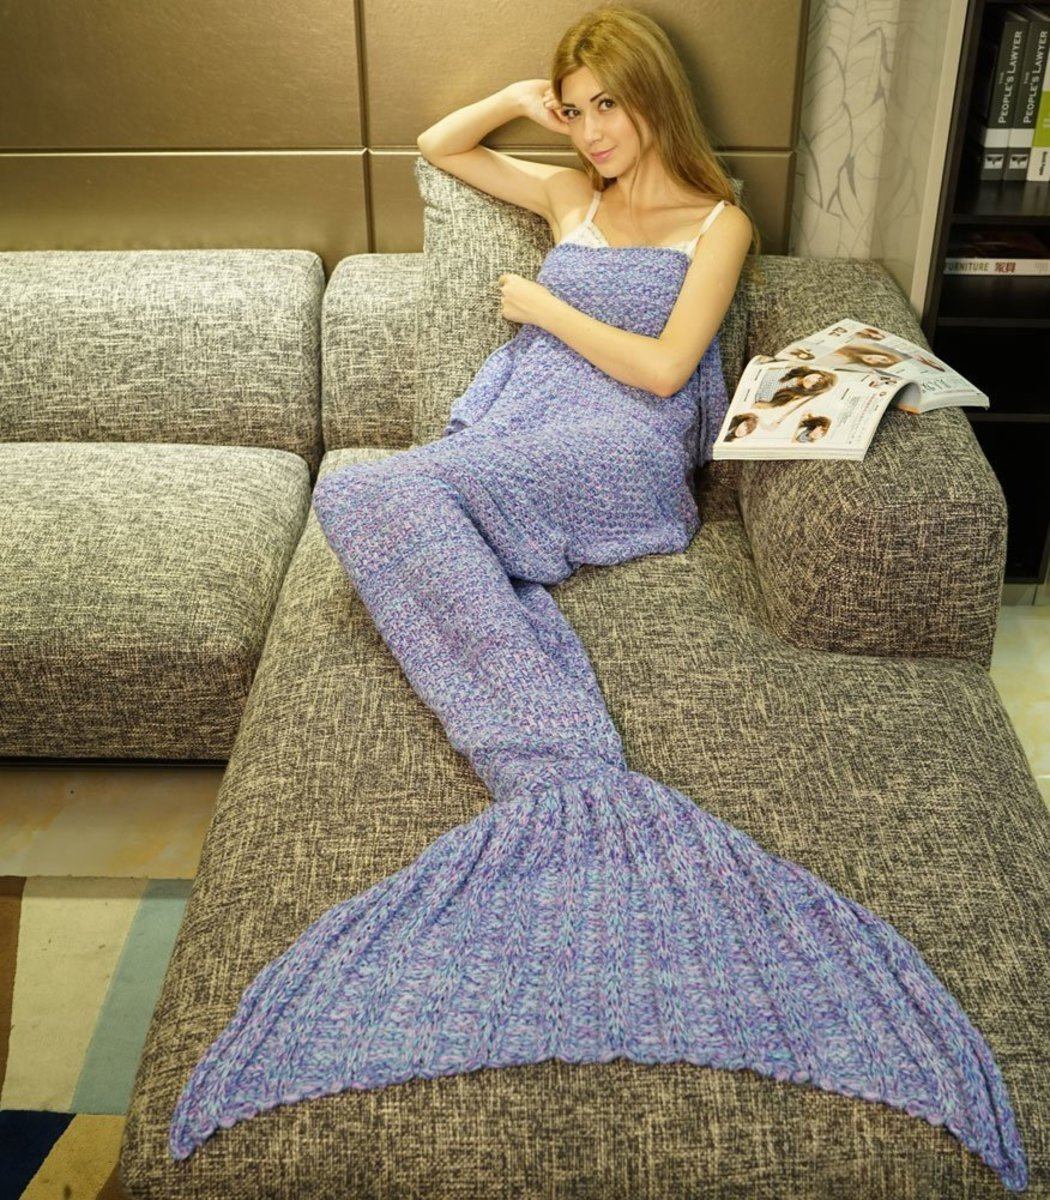 This super soft mermaid blanket lets girls chill in style.